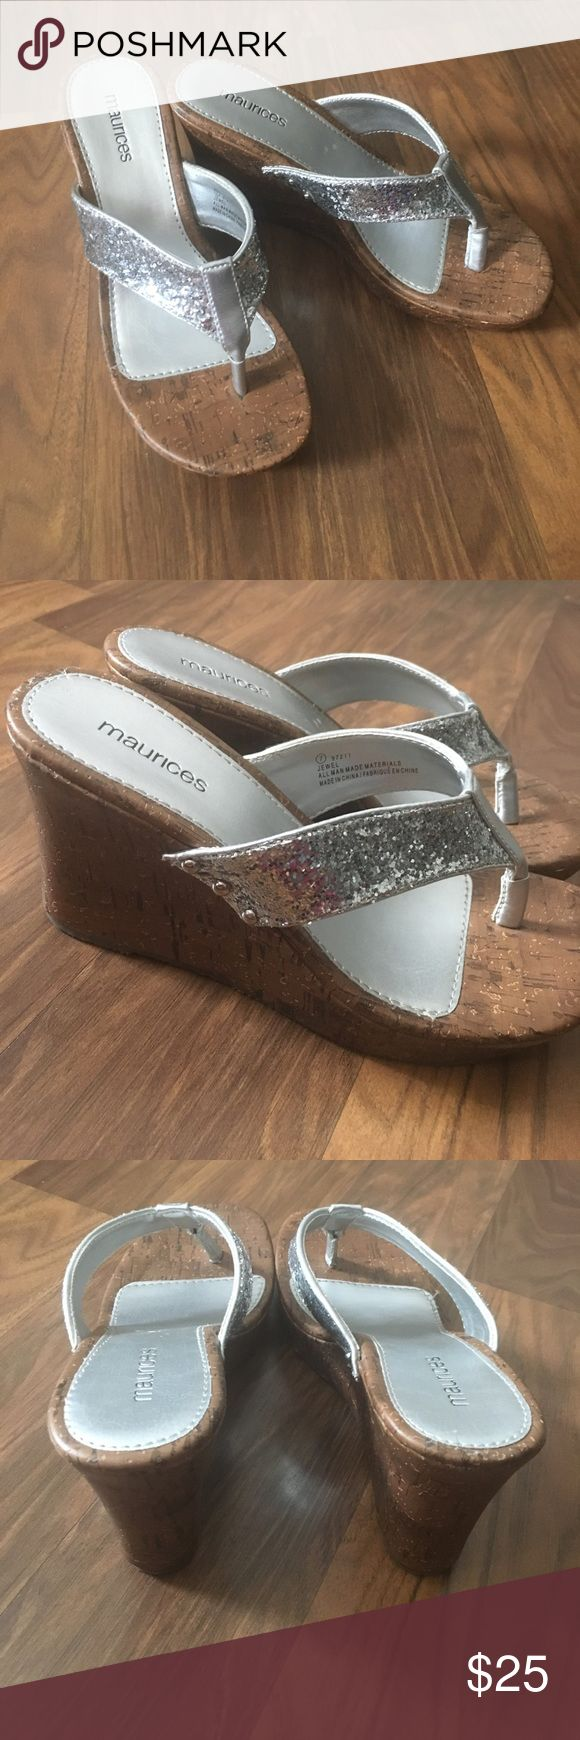 ❤ Silver Wedge Sandals!2-3 inch heel. Silver wedge Maurice's sandals!! Worn only for a few hours to my brothers graduation last year. Just too small now! It has a great gripped bottom that won't make you slip! Love these shoes. Wish the still fit! Maurices Shoes Wedges